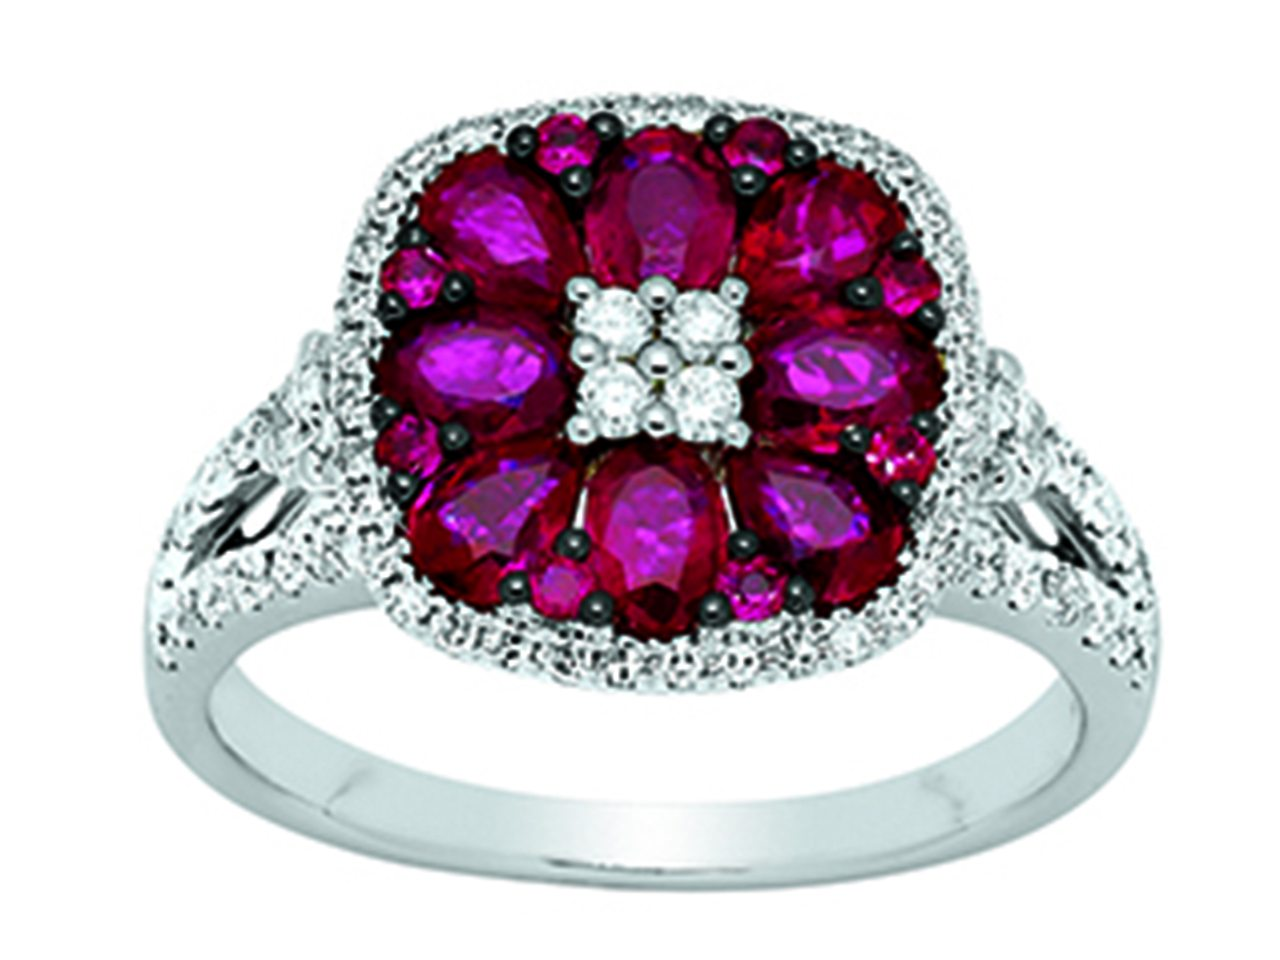 Bague Or girs 18k, rubis 1,60ct, diamants 0,63ct, doigt 54